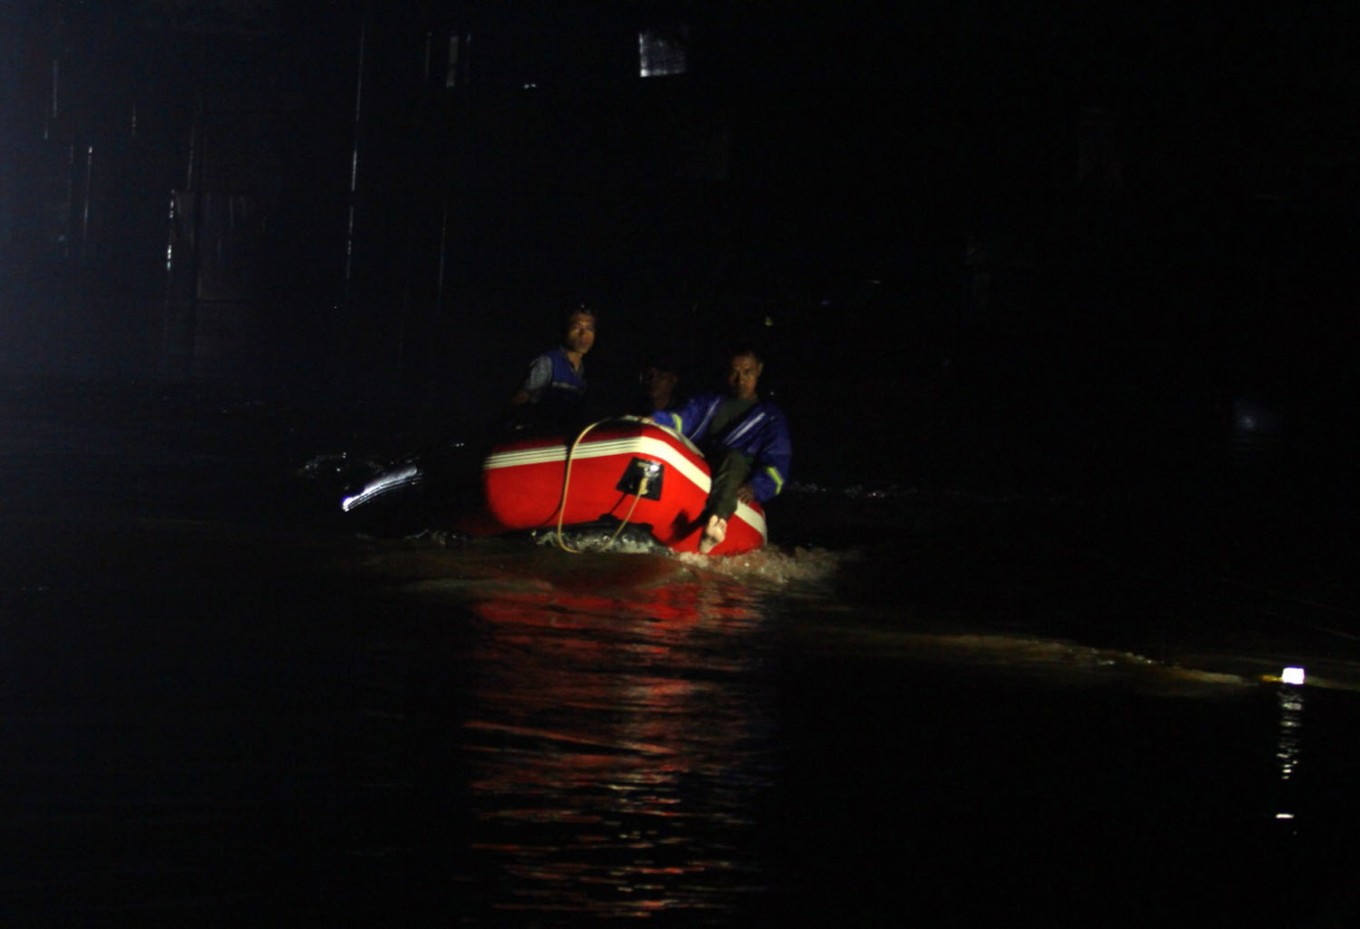 Floods in Greater Jakarta, Banten claim at least 43 lives: Official data